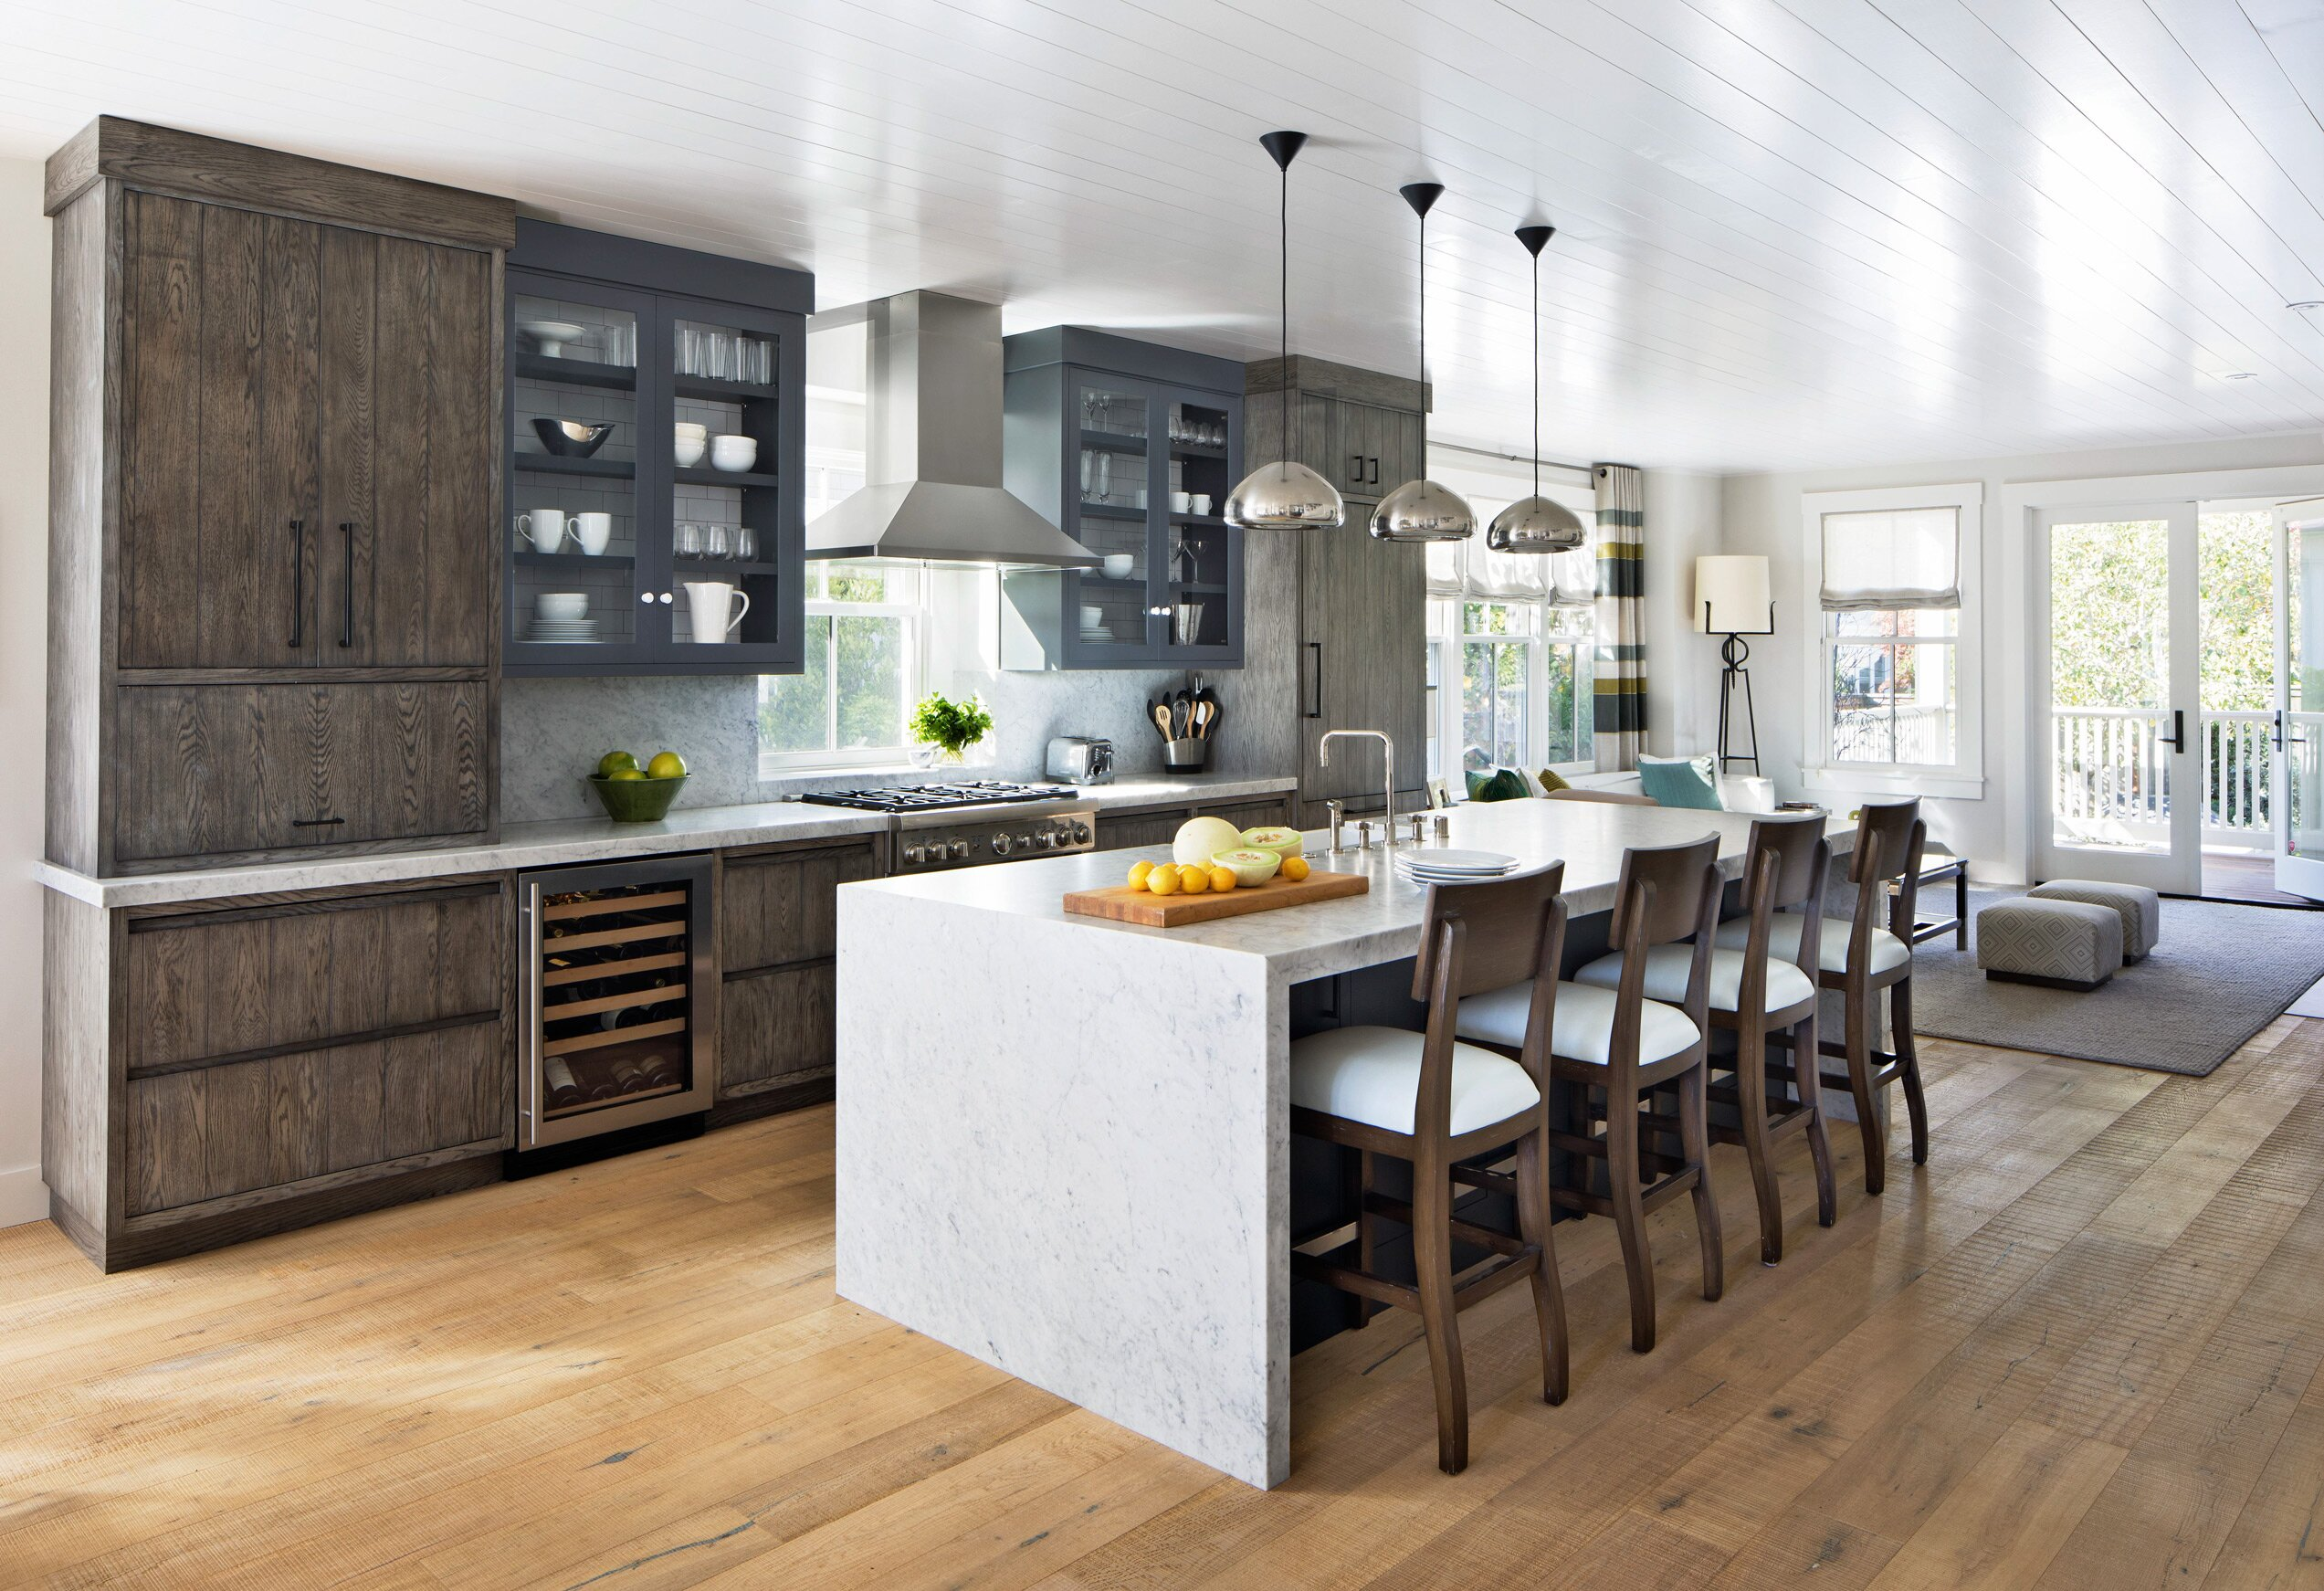 17 Must-See Farmhouse Kitchens